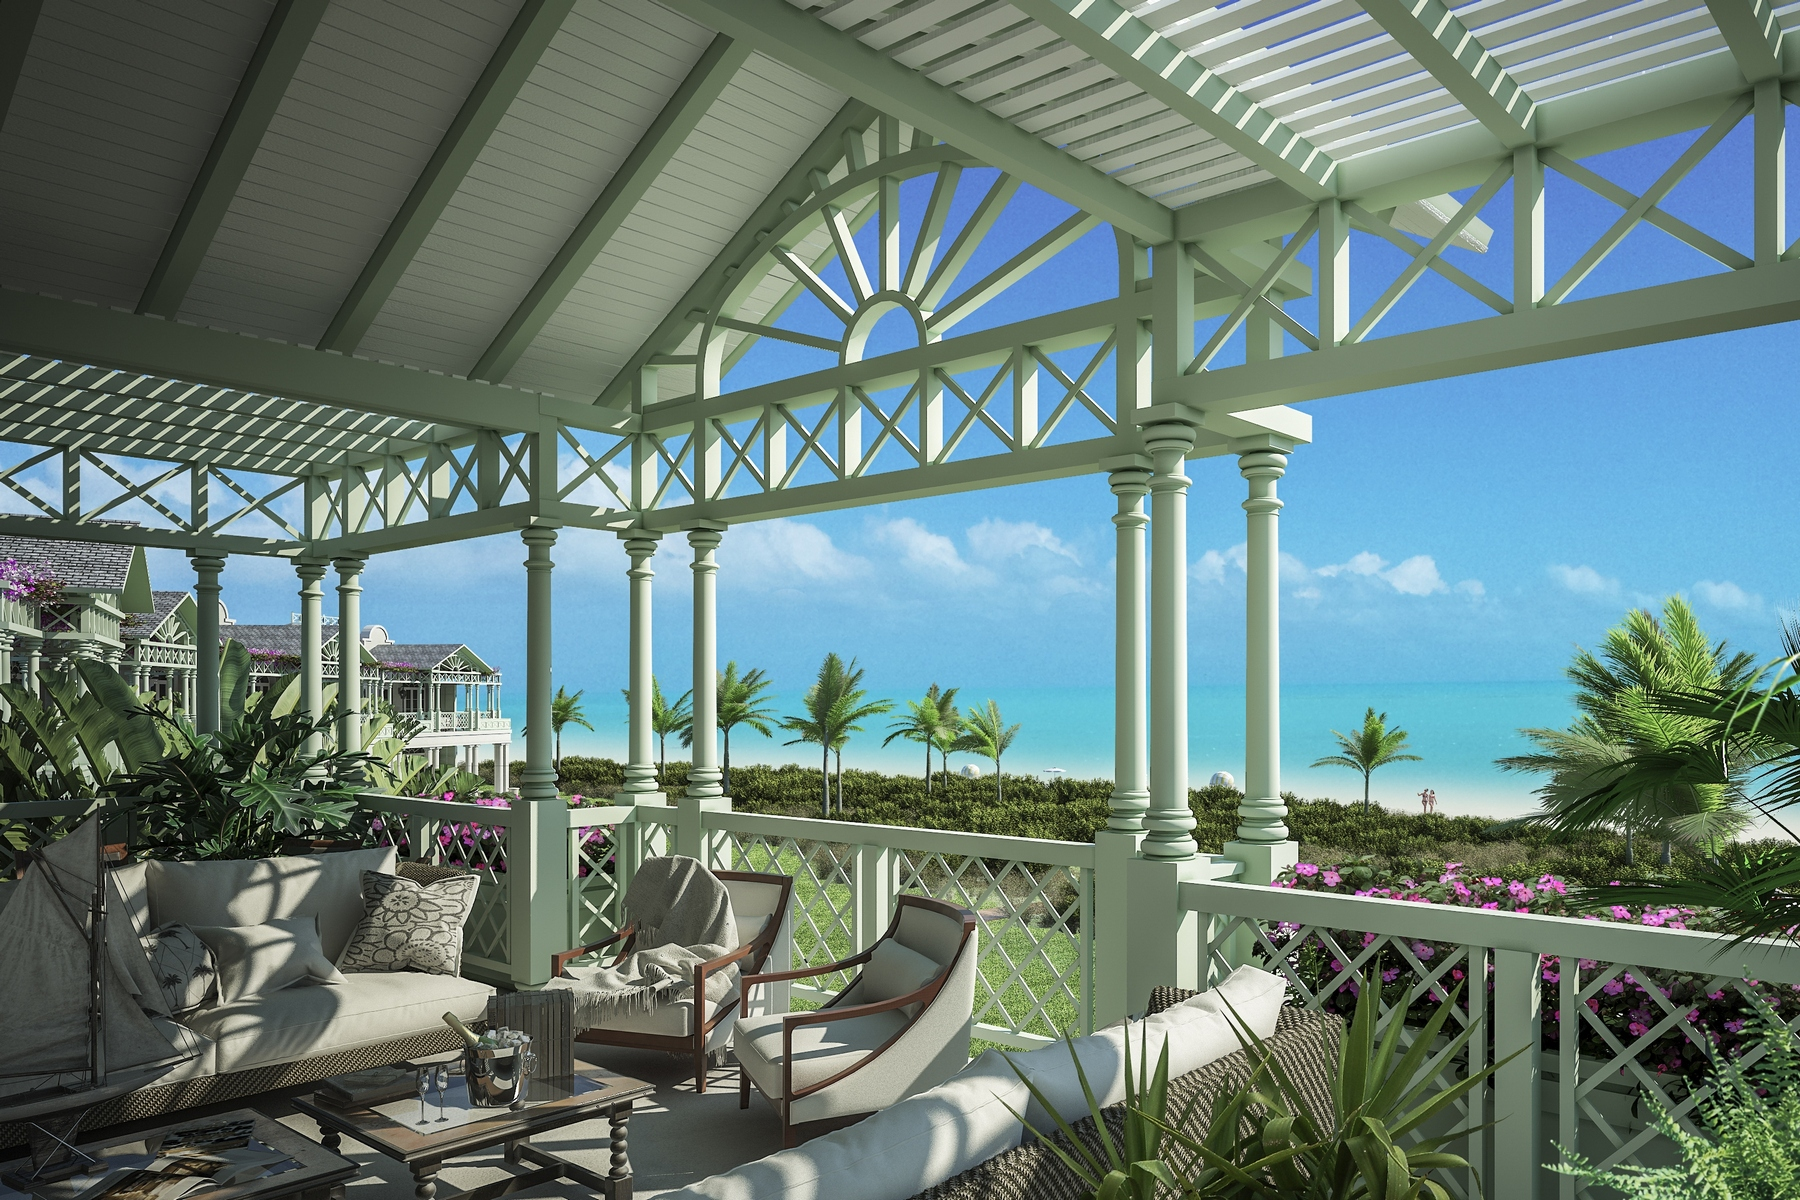 Single Family Home for Sale at The Shore Club ~ Villa 4 The Shore Club, Long Bay, Turks And Caicos Islands